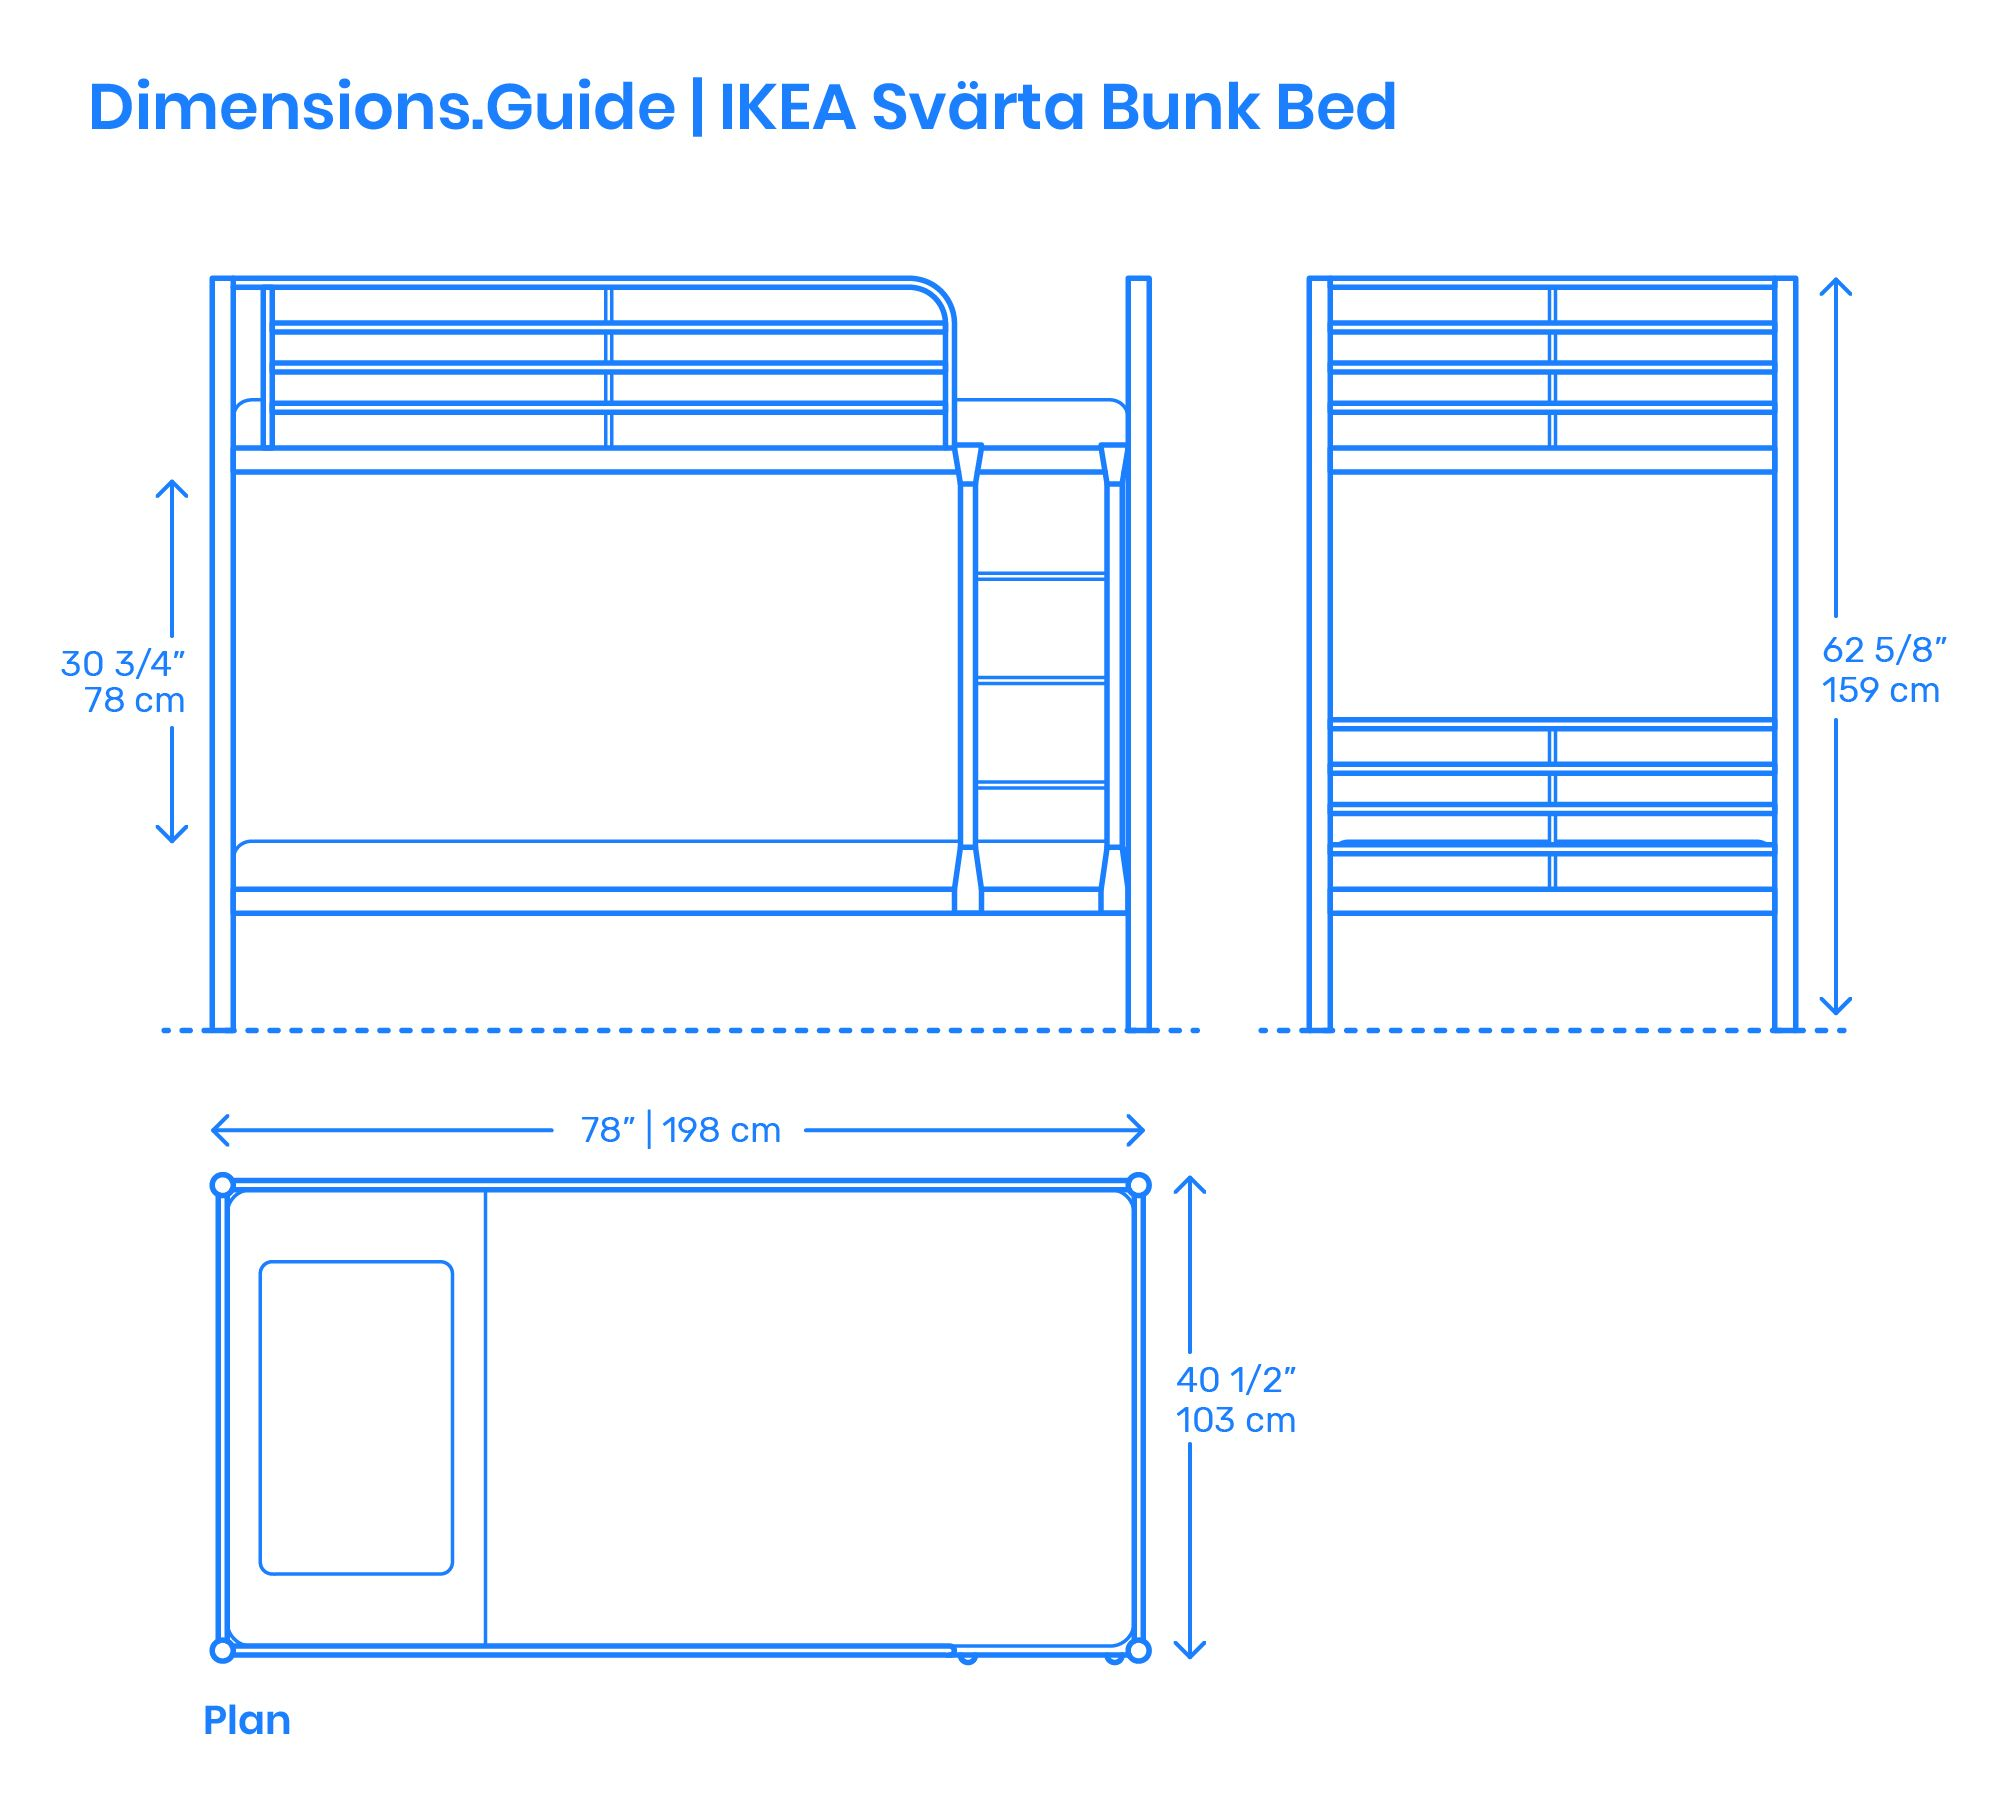 The Ikea Svarta Bunk Bed Is A Streamlined Steel Framed Bunk Bed With Thin Metal Railings Used Around The Perimeter F Bunk Beds Metal Bunk Beds Bunk Bed Designs